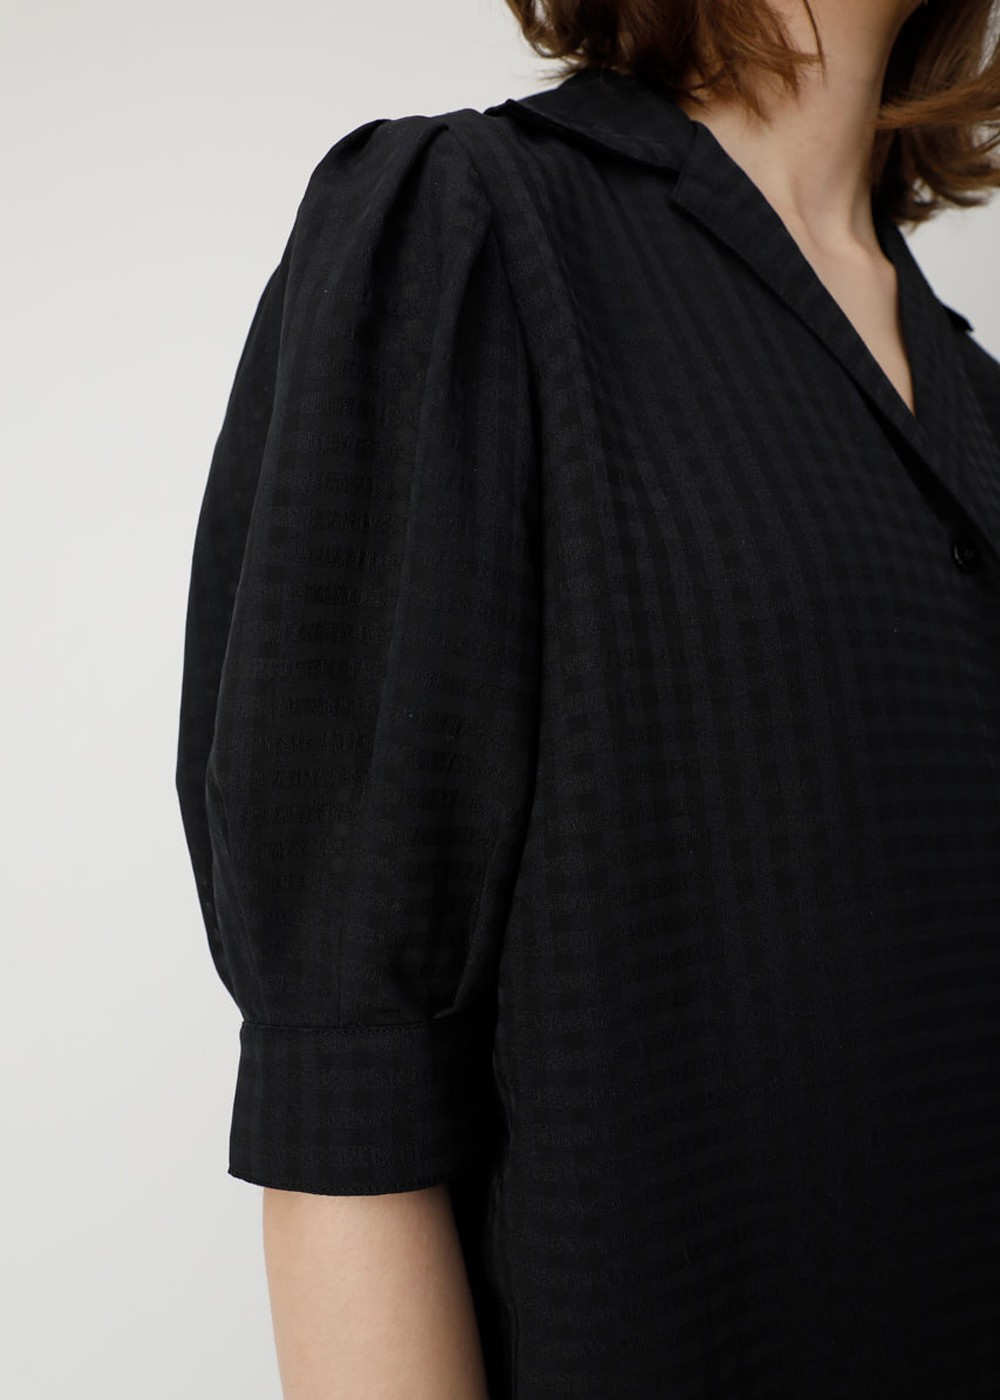 【最大70%OFF】SHEER CHECK PUFF SLEEVE BLOUSE|BLK|ブラウス|MOUSSY